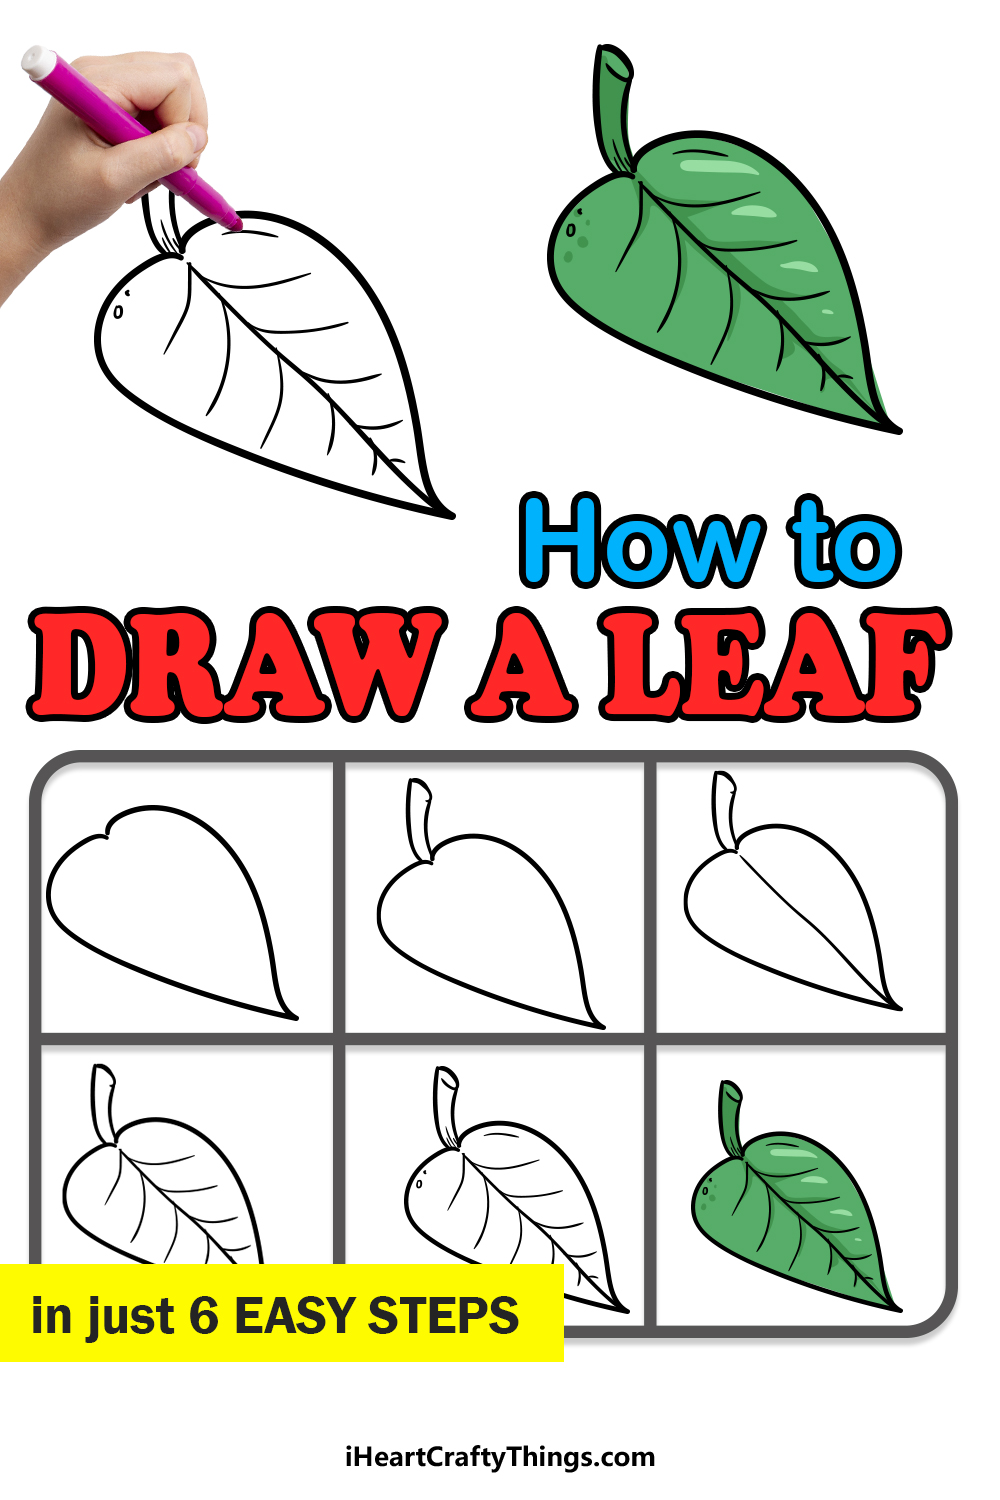 how to draw a leaf in 6 easy steps